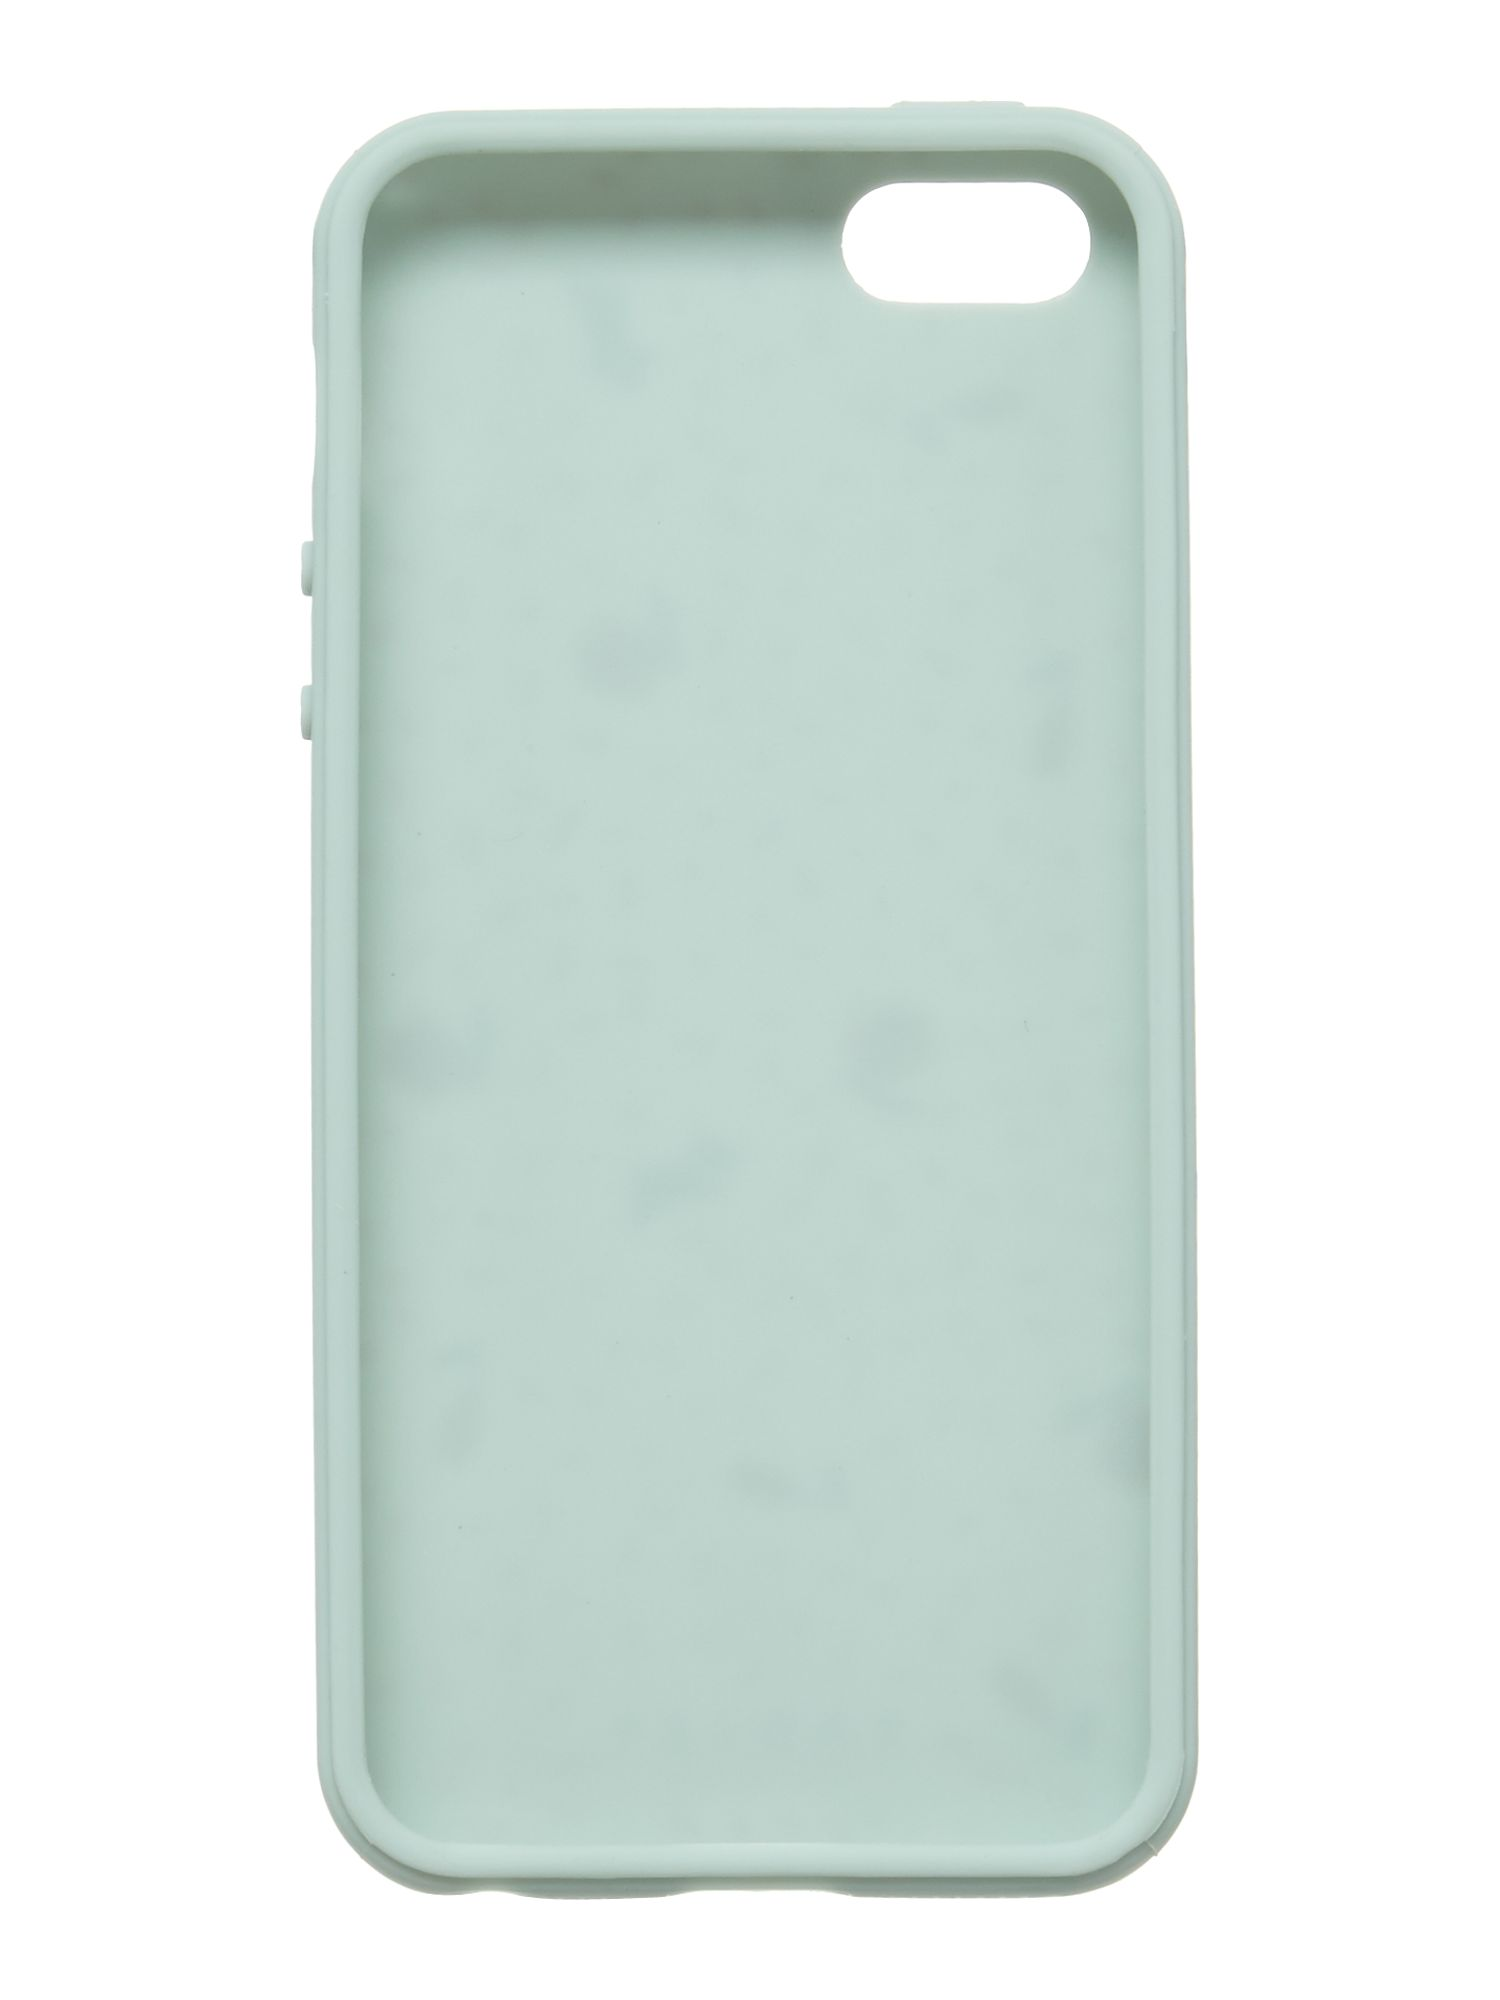 Emerson blue iphone cover